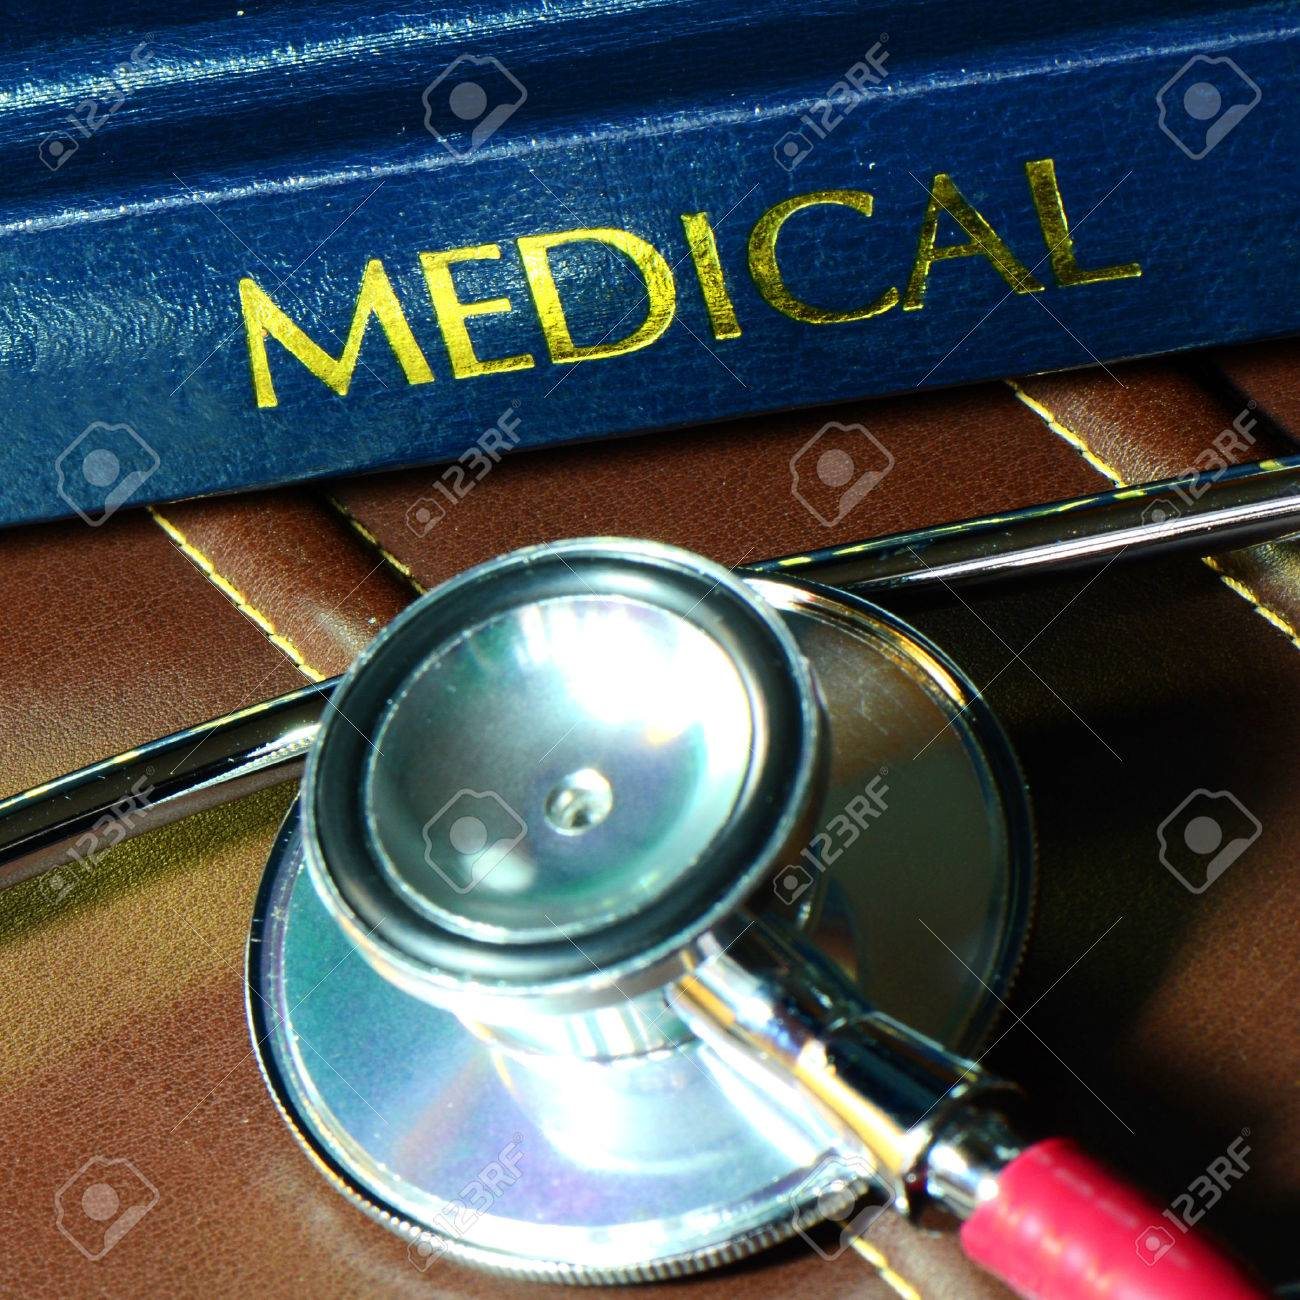 Stethoscope and medical text book on the doctor's desk Stock Photo - 23834806